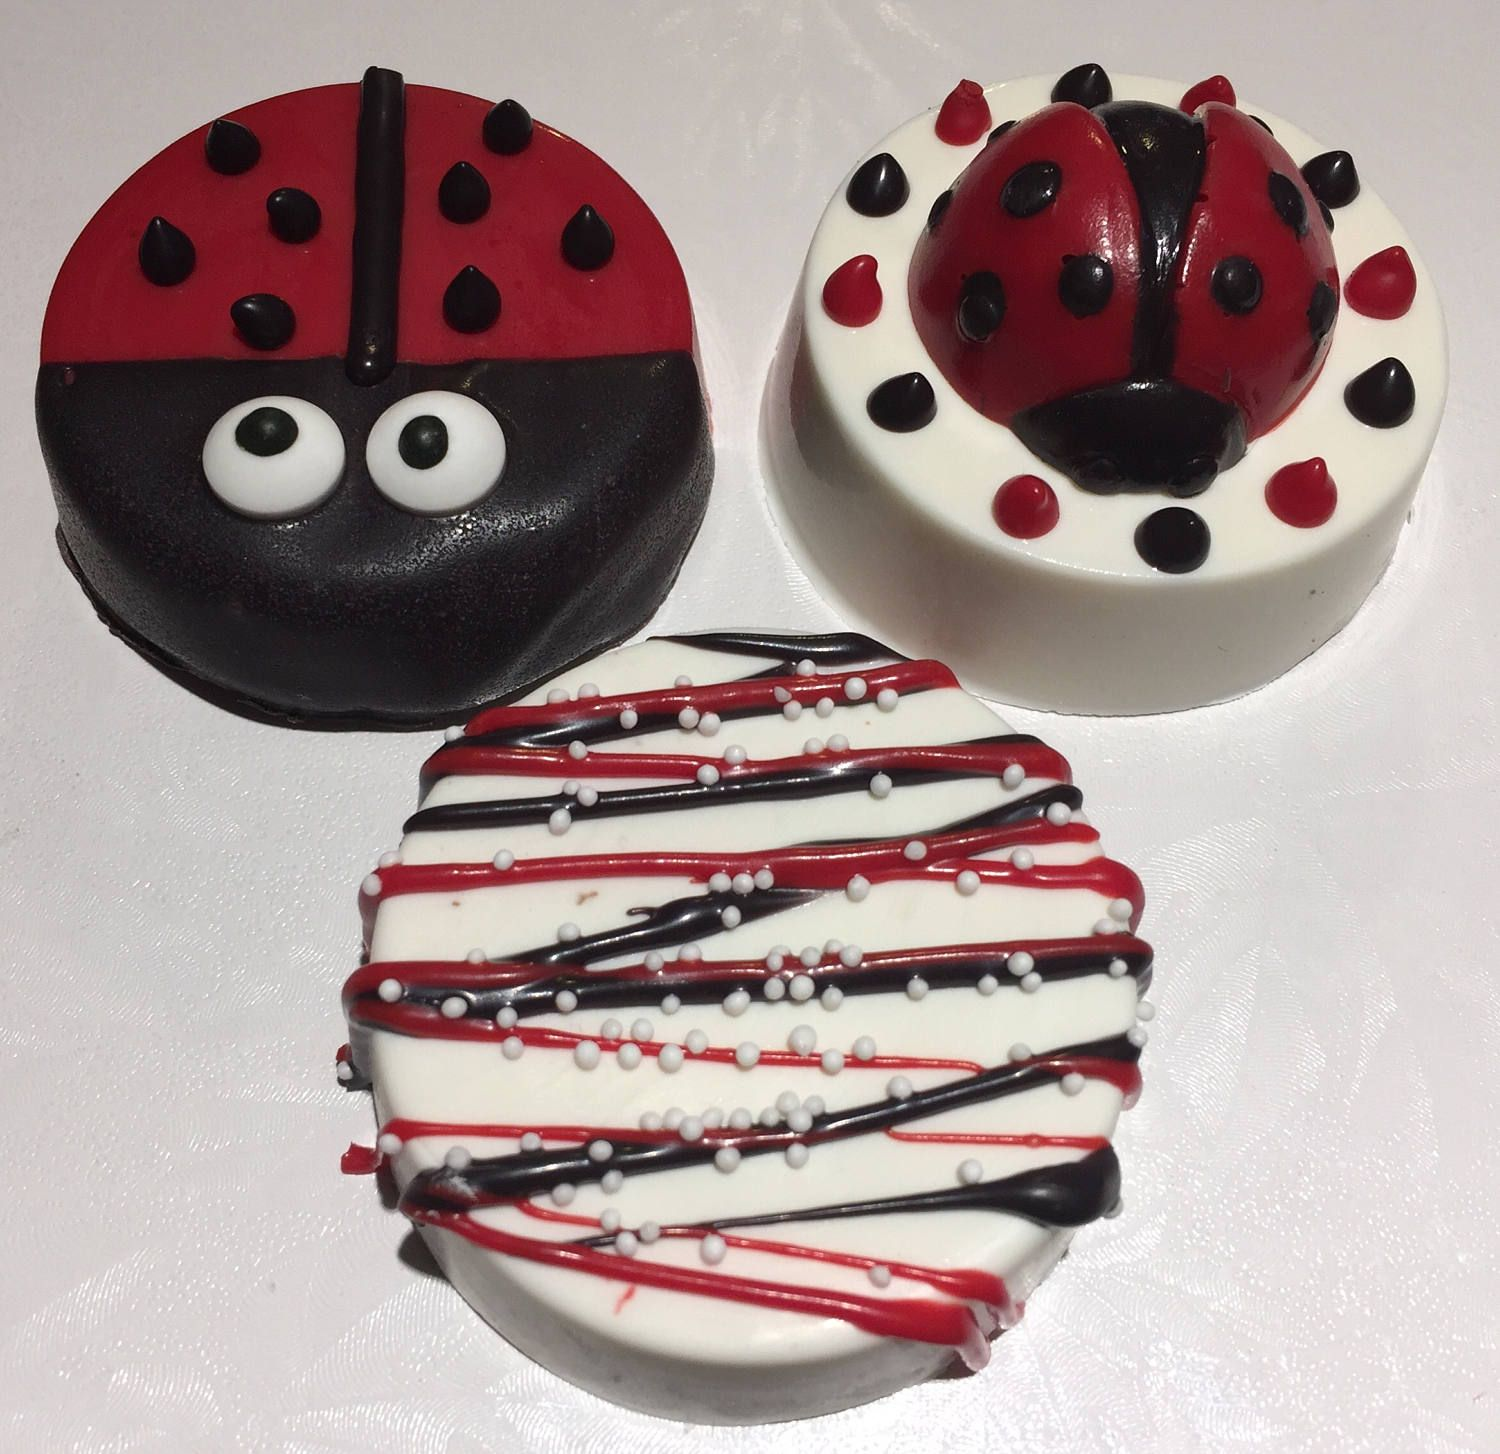 LADYBUG CHOCOLATE Covered OREOS®/12 Count/Ladybug Birthday/Baby Shower Favor/Girl's Birthday/Ladybug Lover/Insects & Bugs/ by XOXOChocolatesShoppe on Etsy